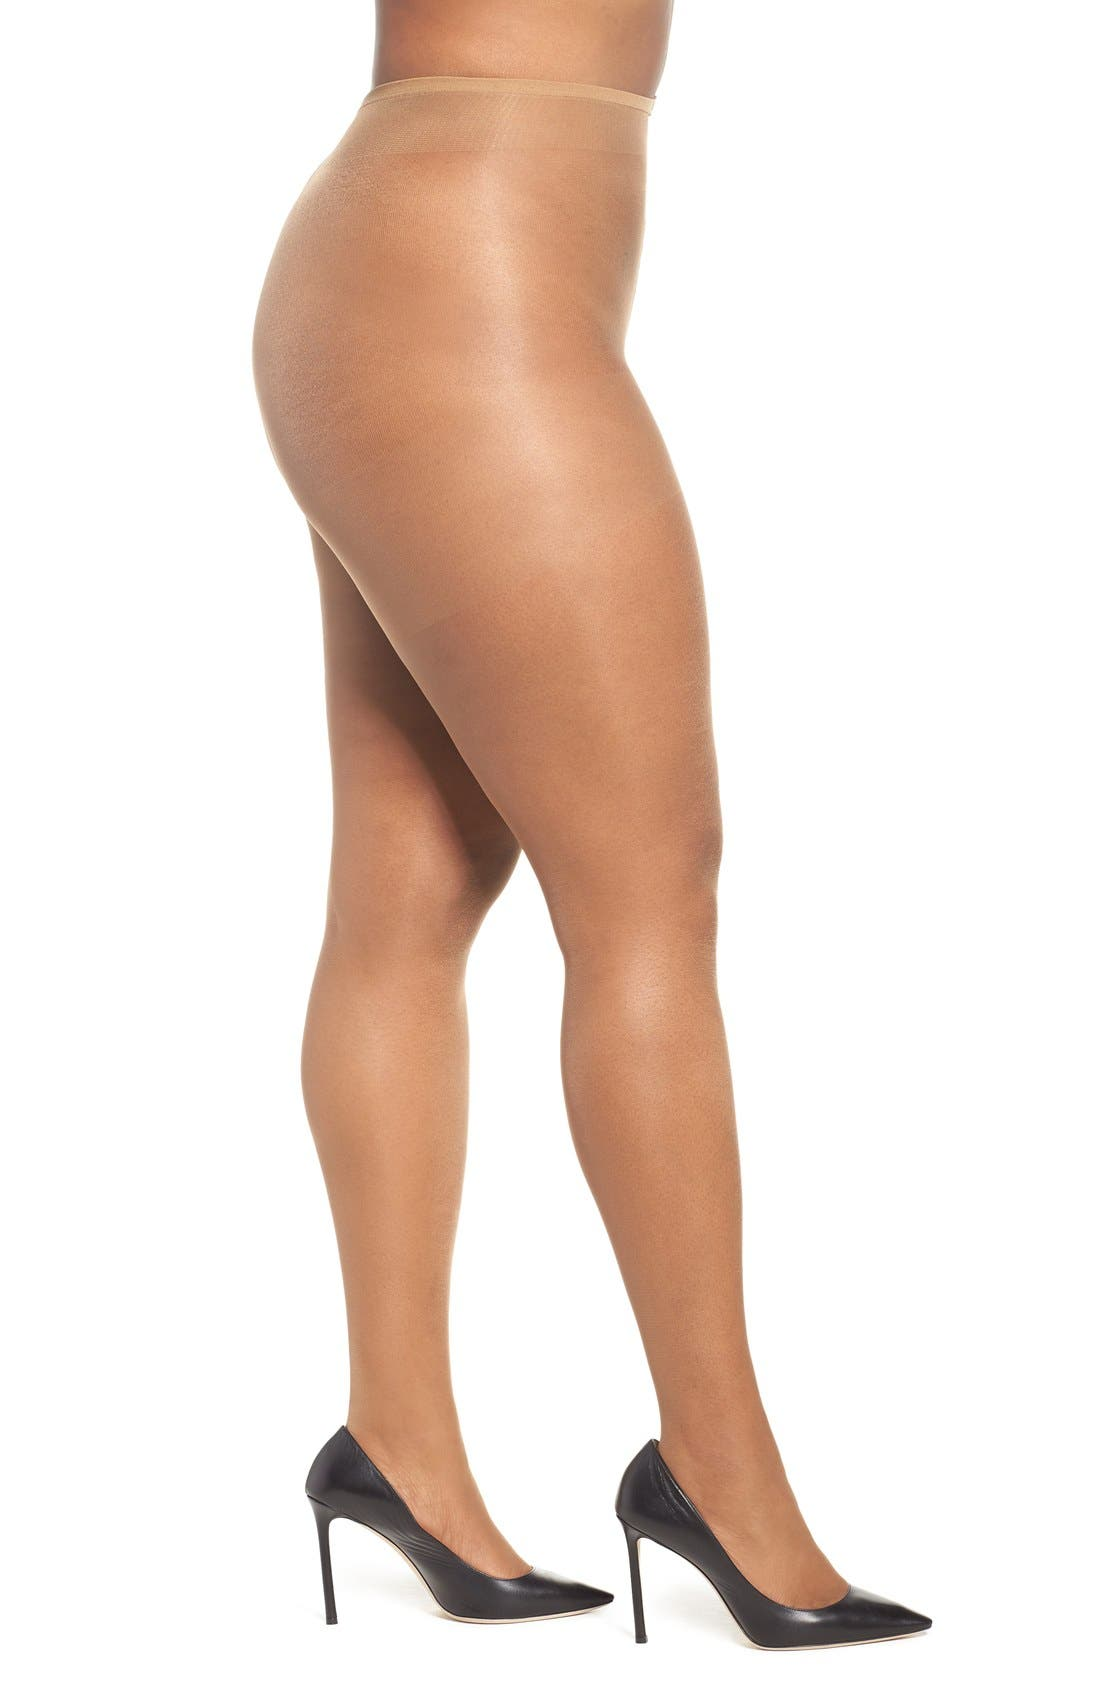 Alternate Image 1 Selected - Nubian Skin 'Curve' Pantyhose (Plus Size)